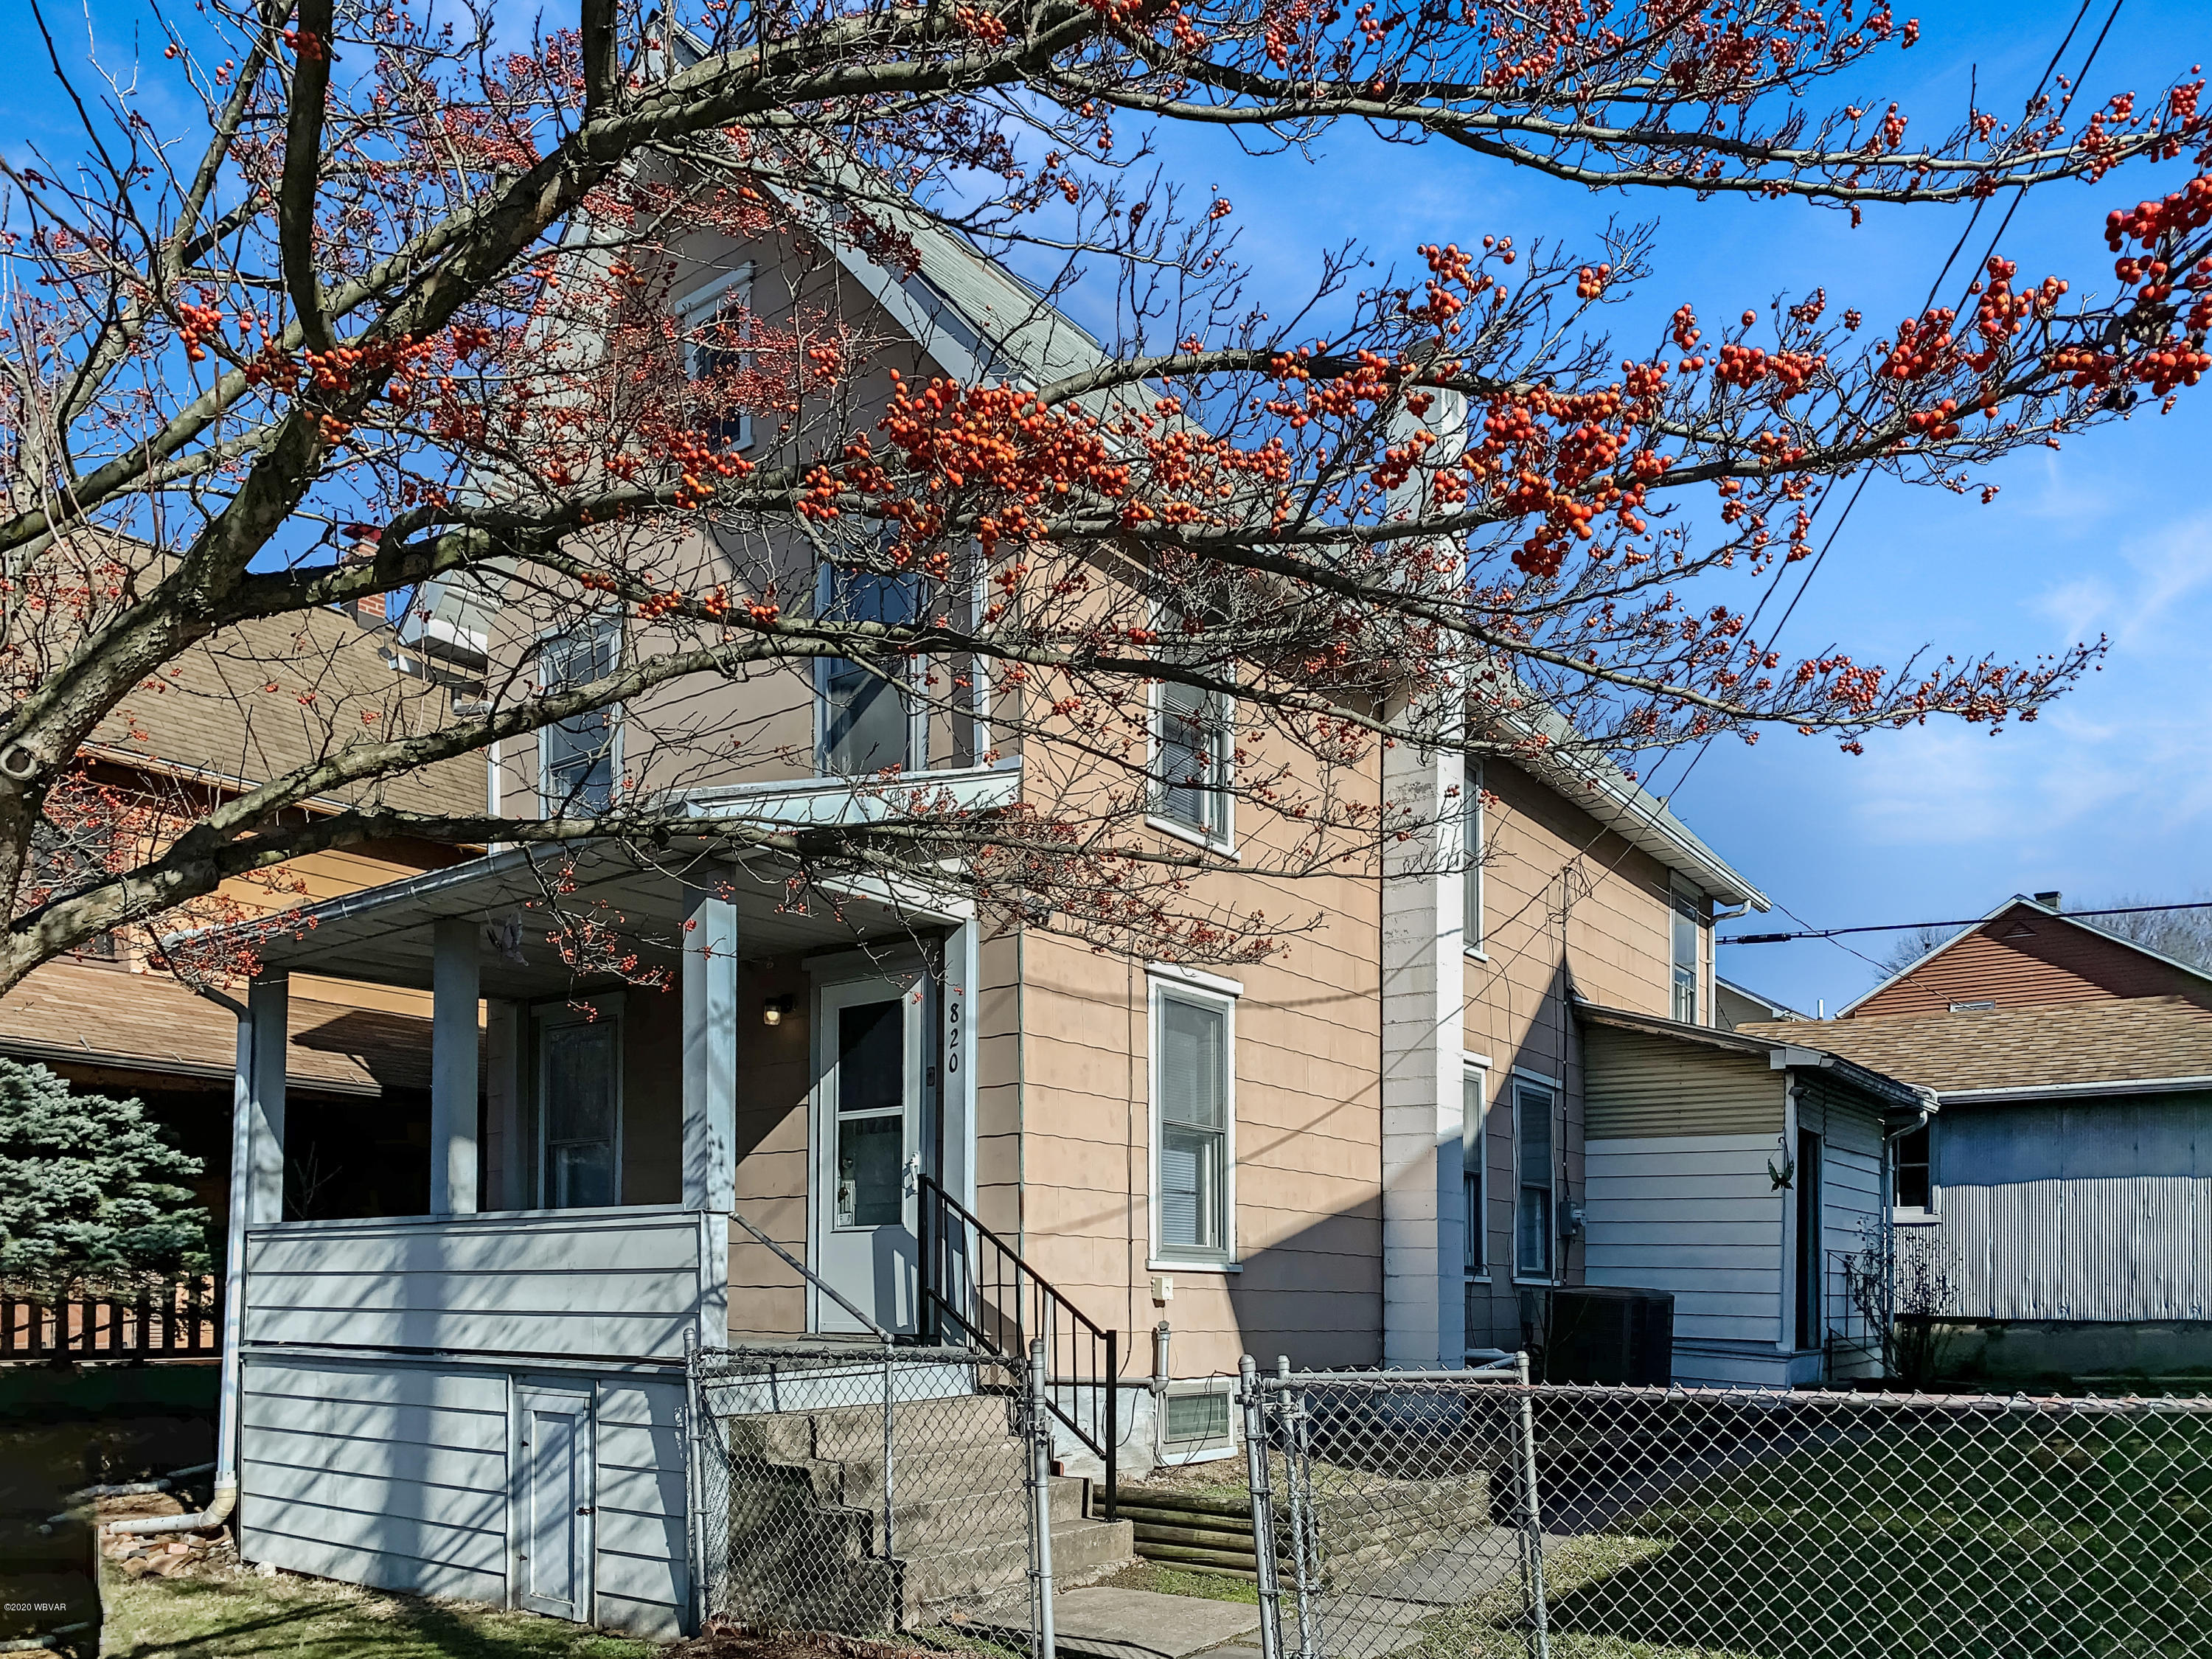 820 CHERRY STREET,Williamsport,PA 17701,3 Bedrooms Bedrooms,1 BathroomBathrooms,Residential,CHERRY,WB-89530